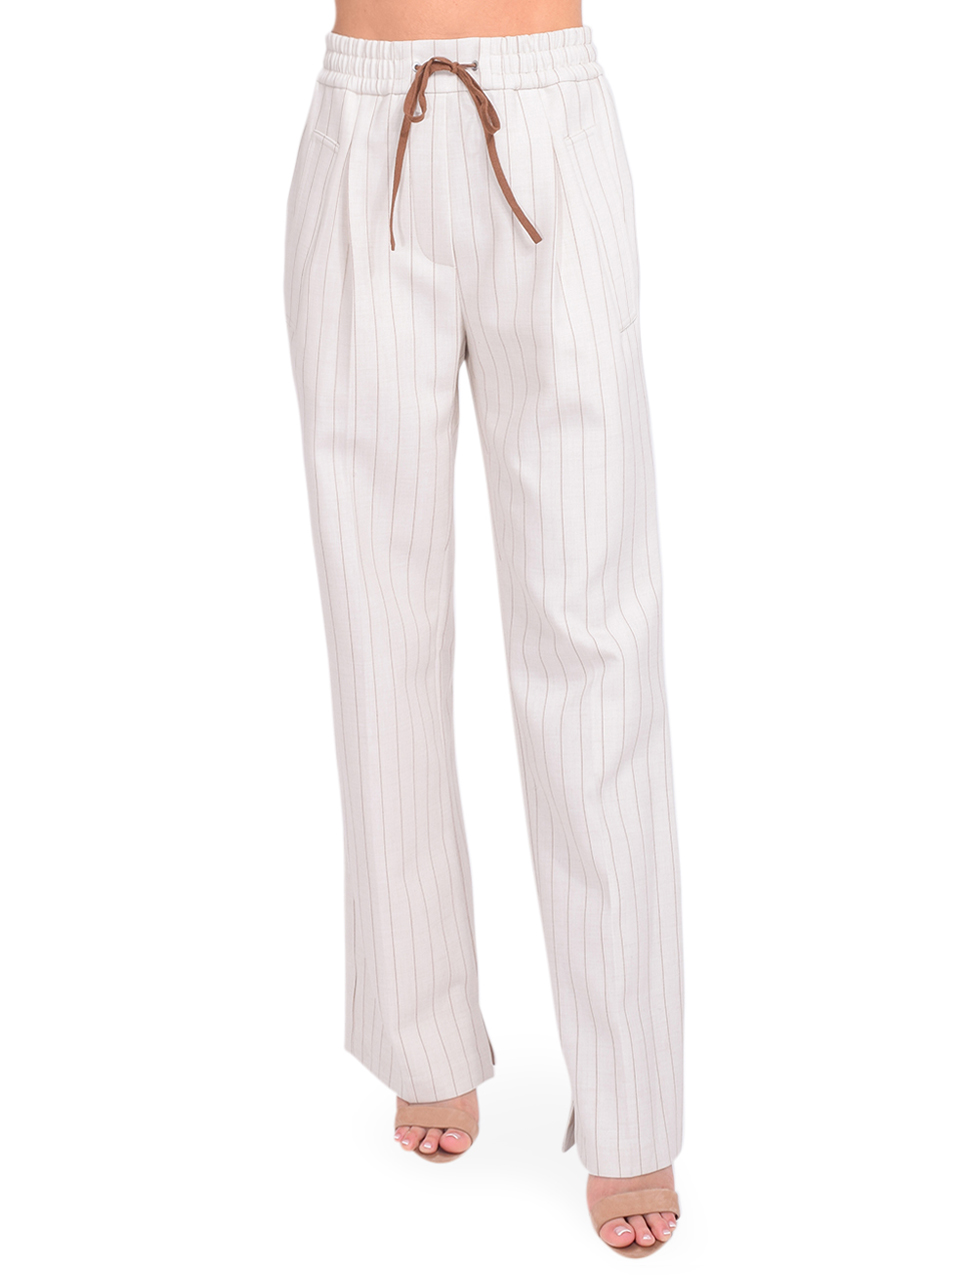 3.1 Phillip Lim Striped Track Pant in Ecru Front View  x1https://cdn11.bigcommerce.com/s-3wu6n/products/33766/images/112093/DSC_0204_Full__20198.1614651154.244.365.jpg?c=2x2